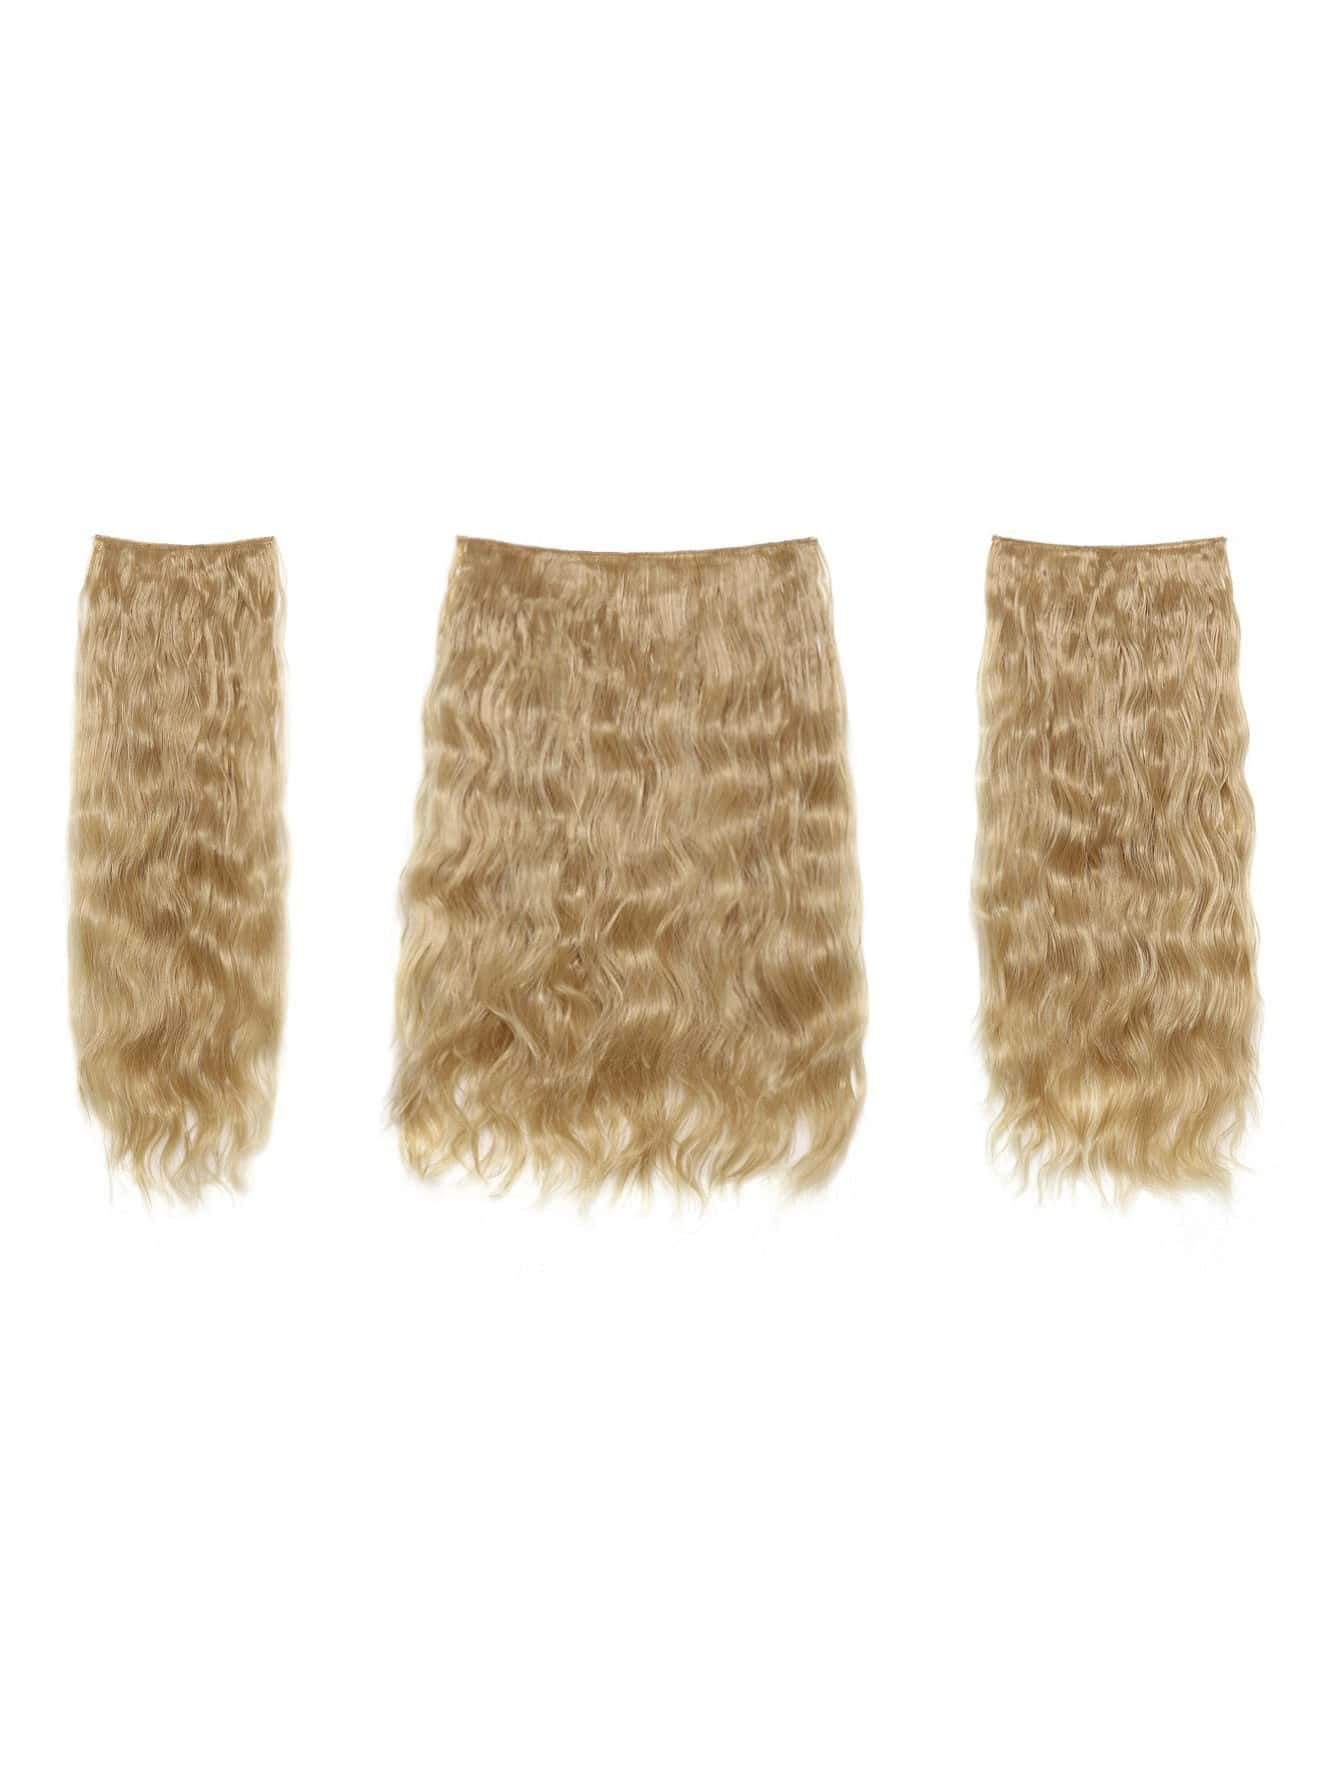 Champagne Blonde Clip In Curly Hair Extension 3pcs